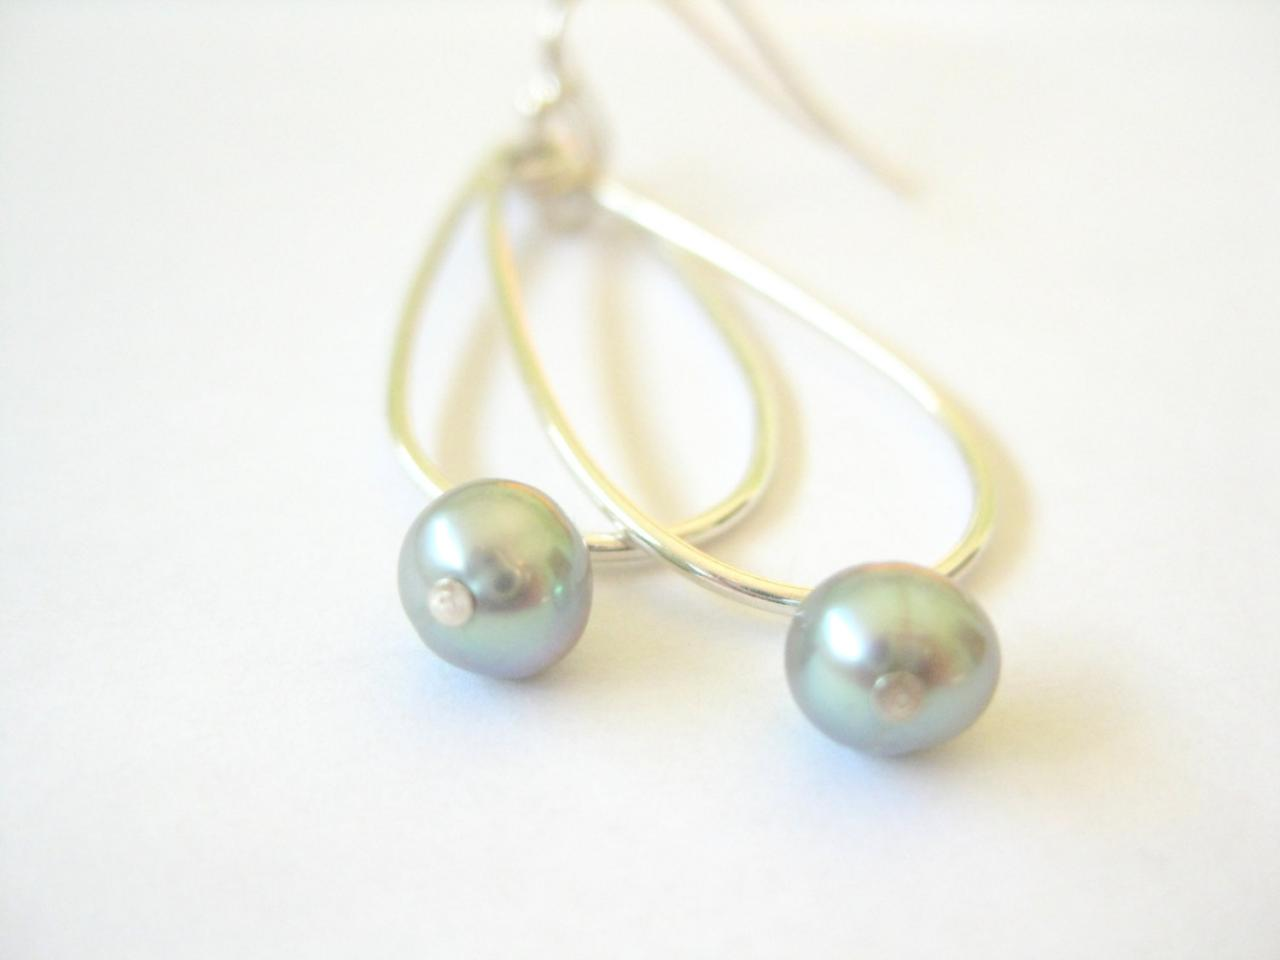 Grey pearl earrings, sterling silver teardrops, grey green freshwater pearls